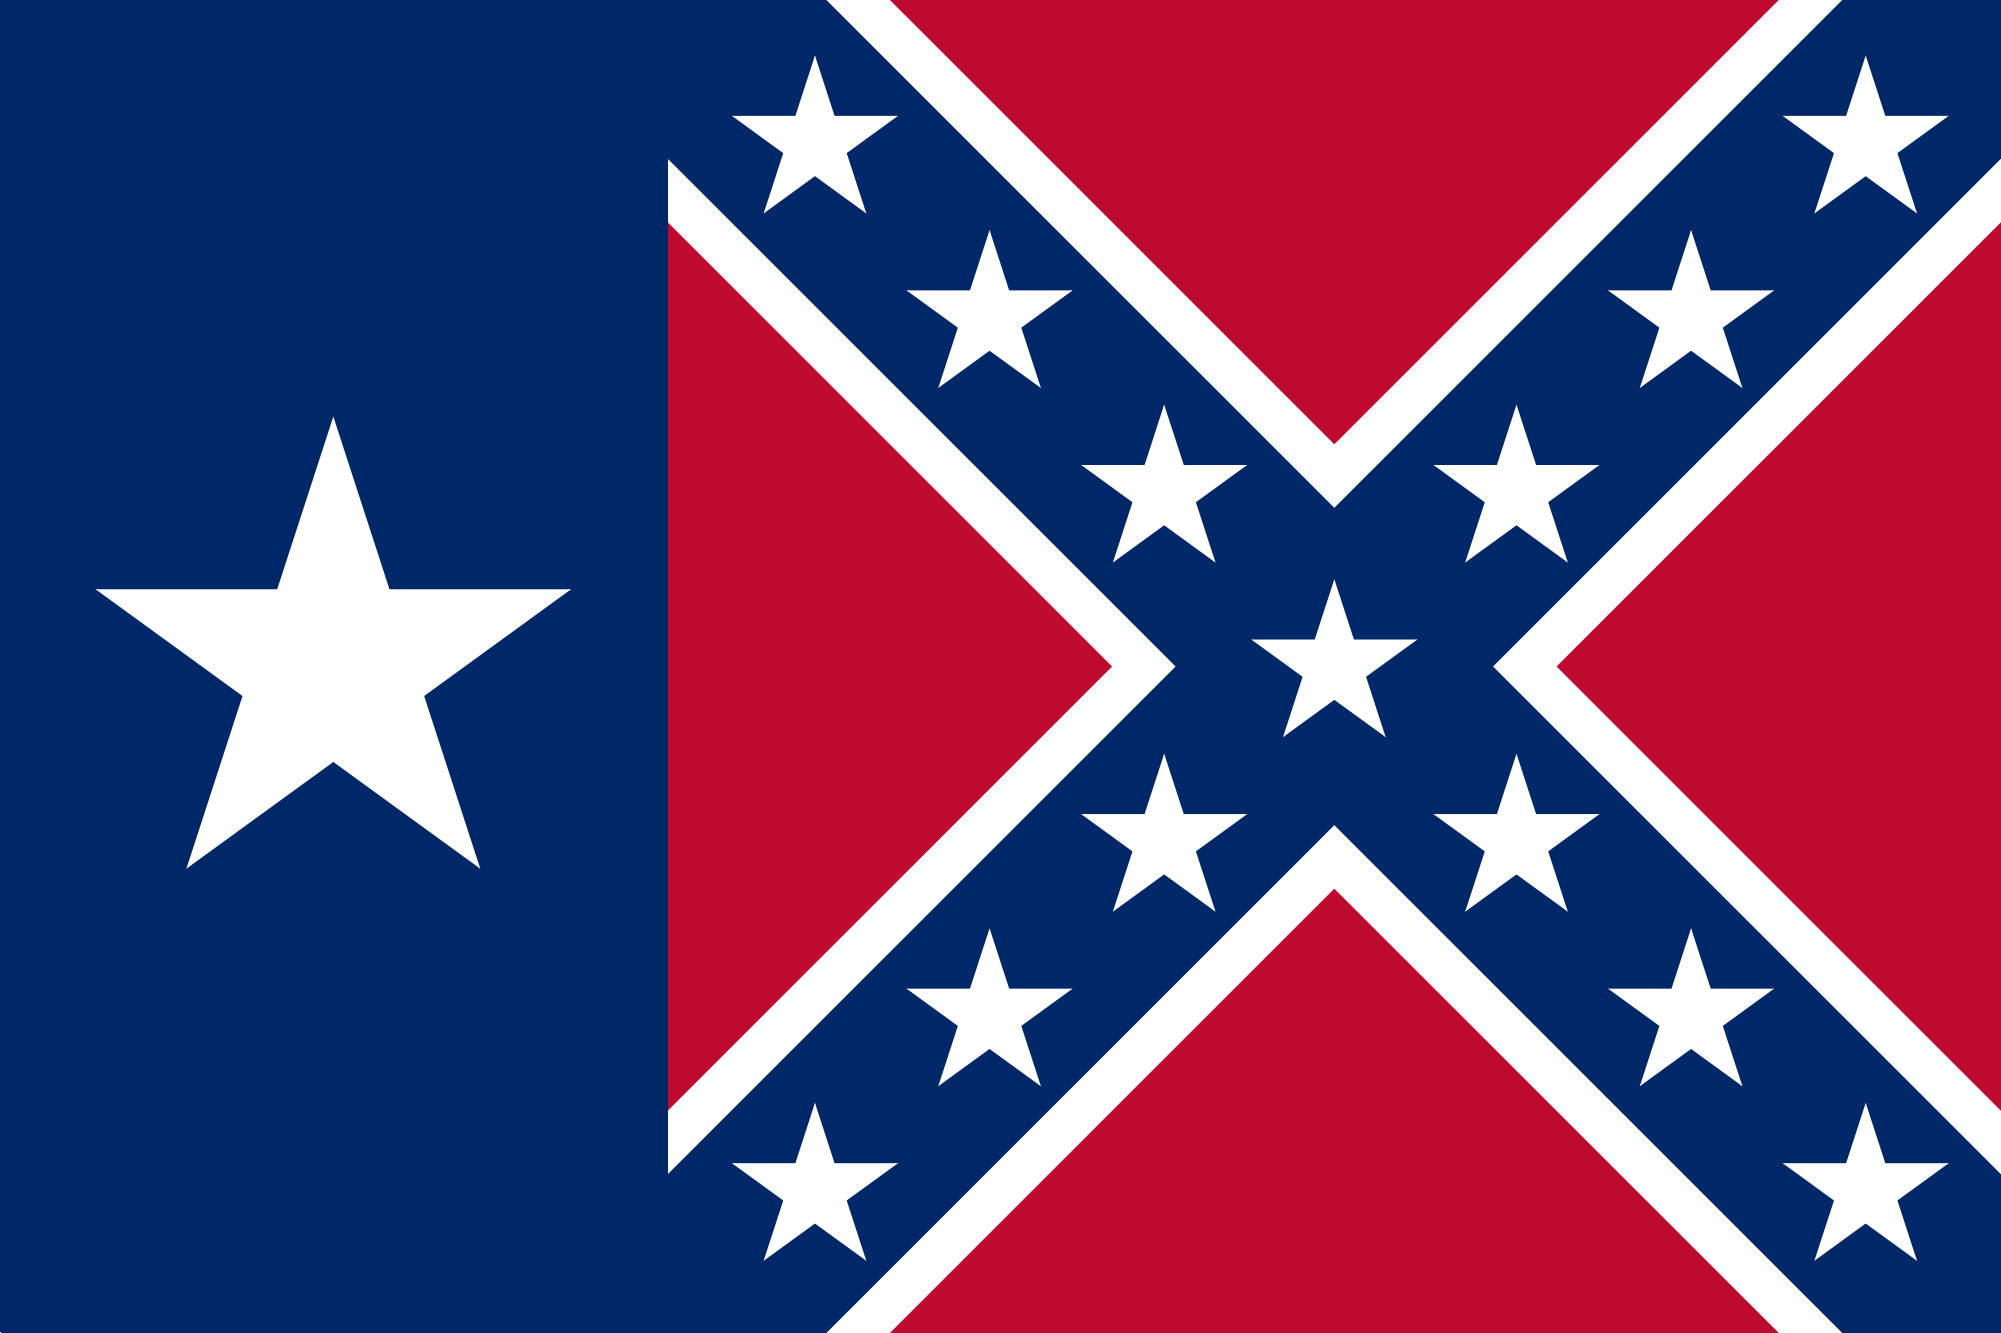 2001x1333 Confederate Flag